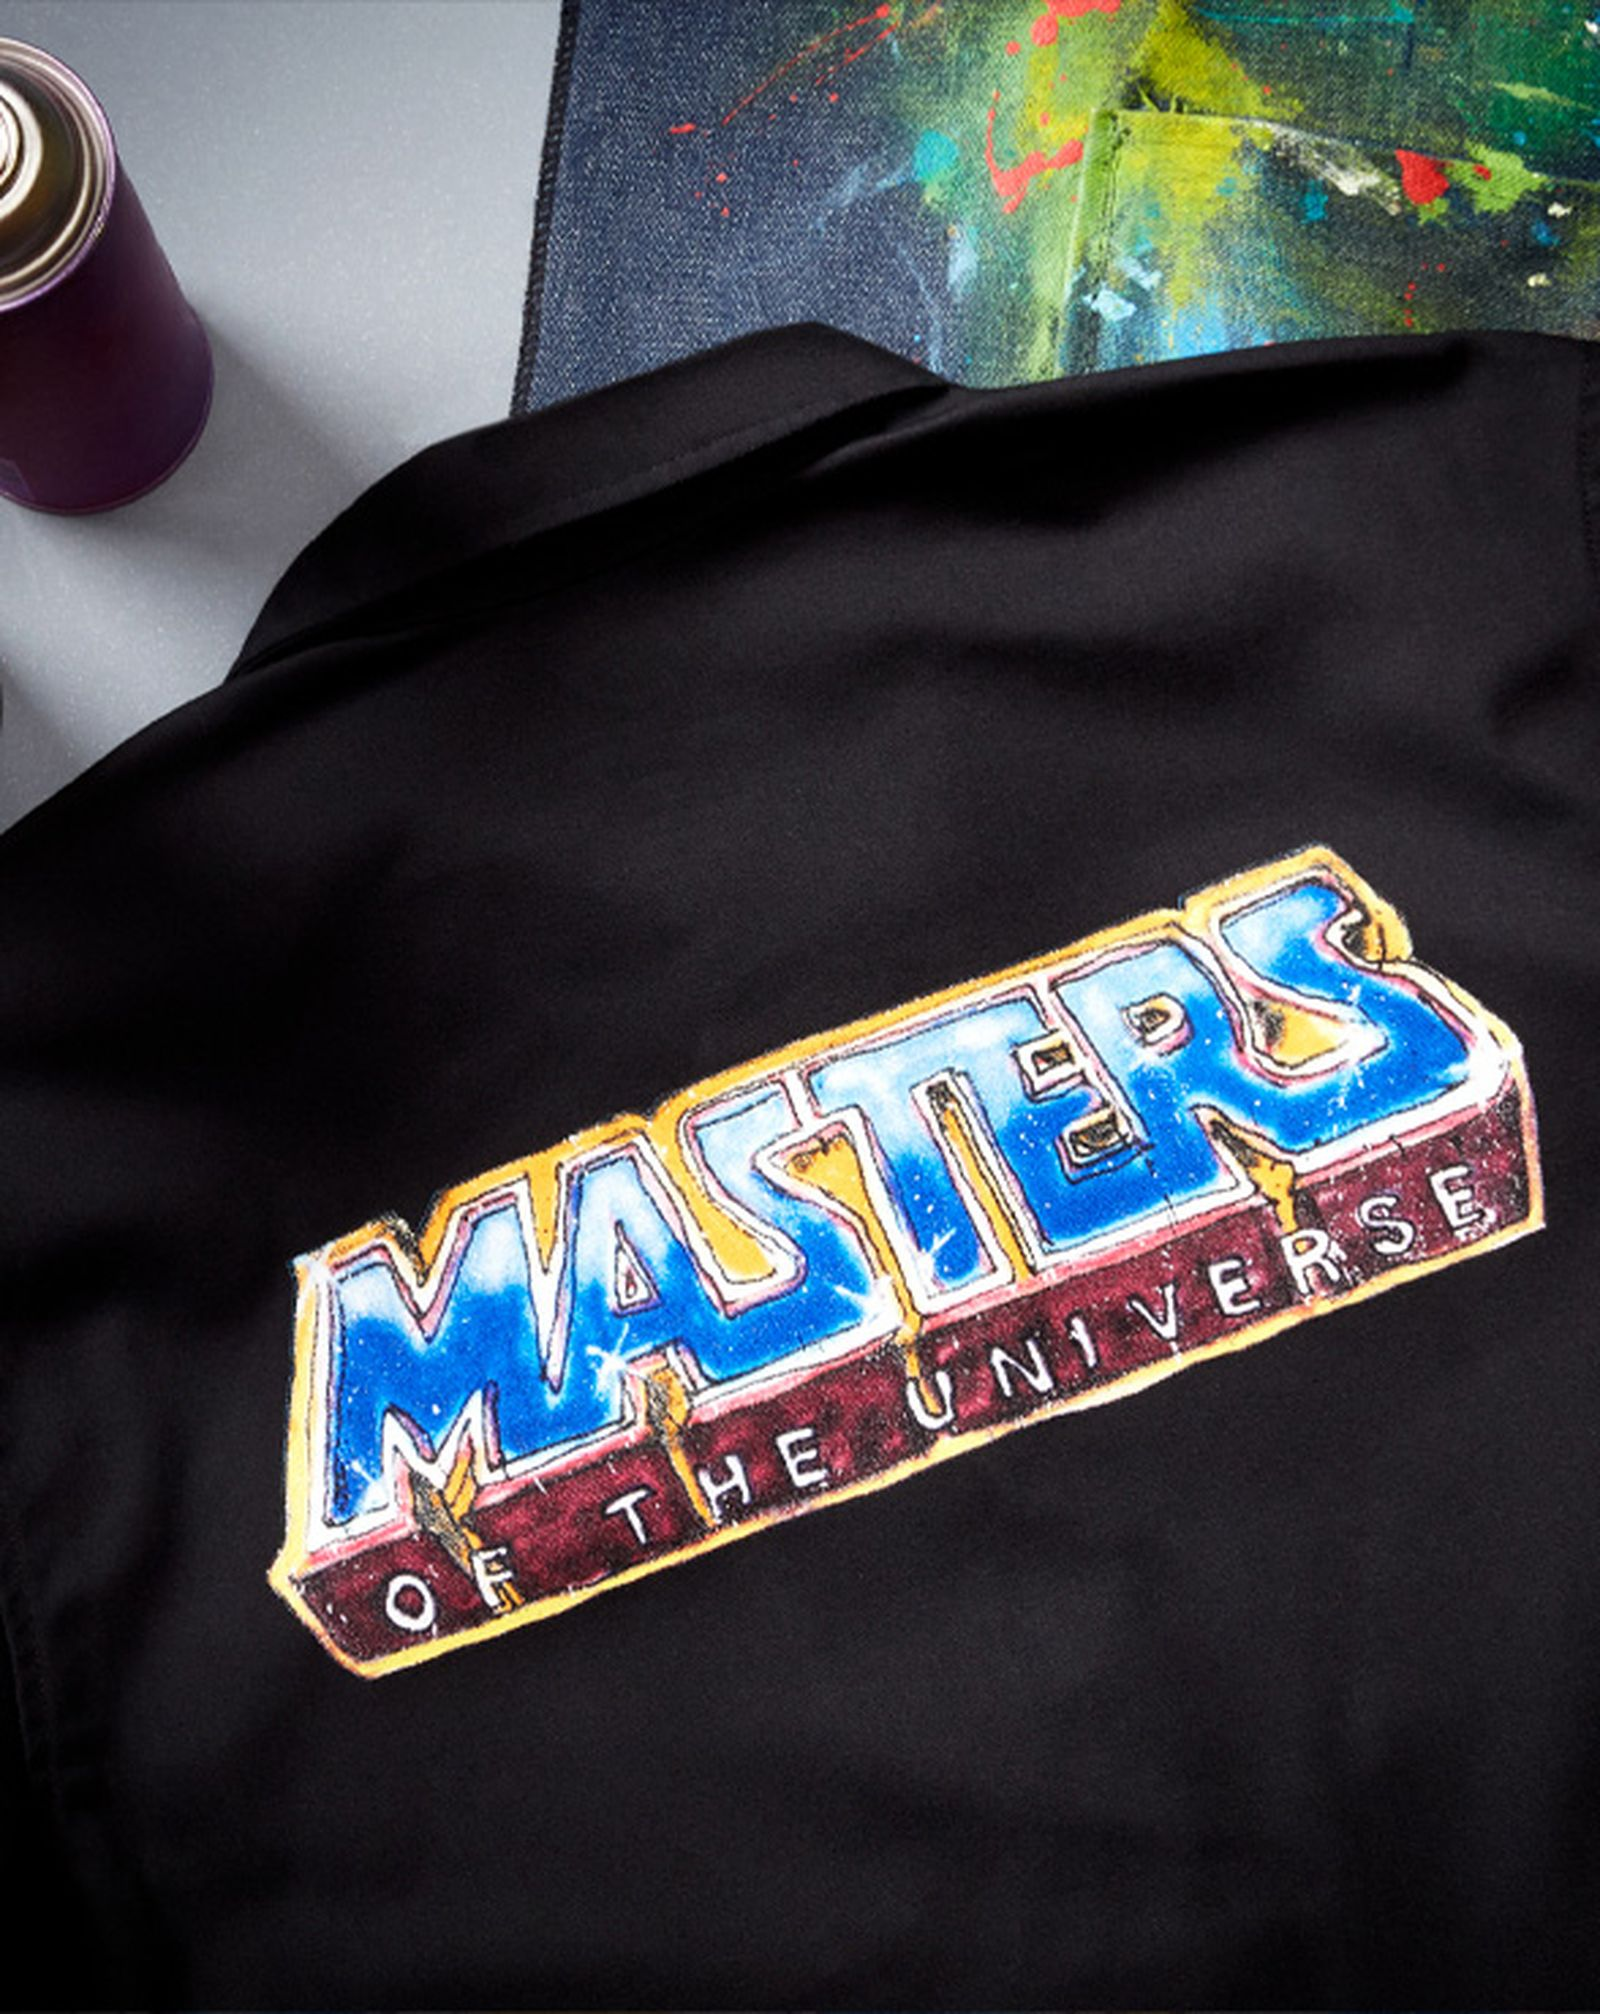 madsaki-mattel-masters-of-the-universe-collaboration-12